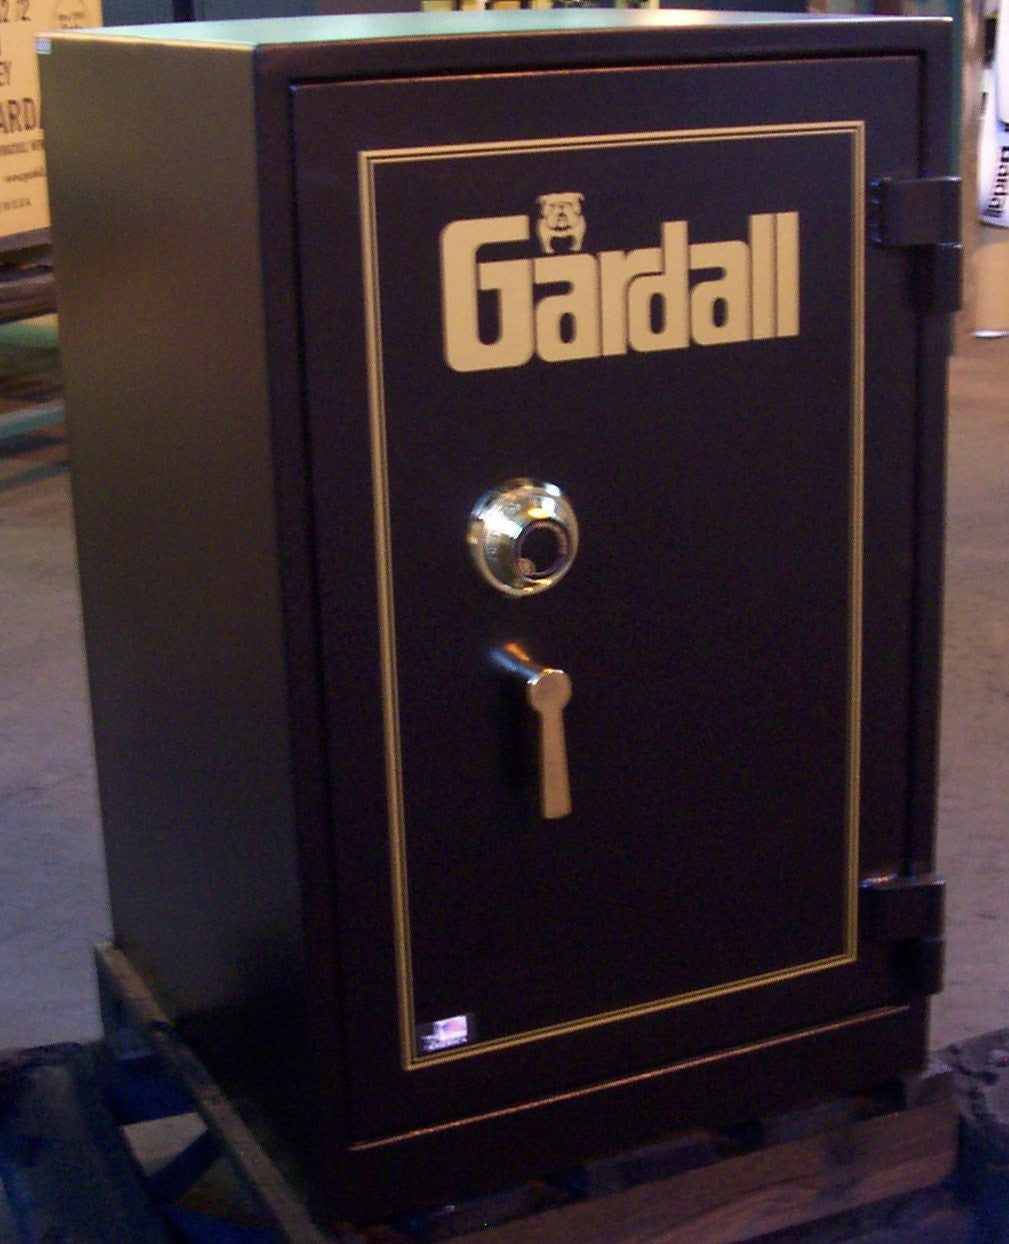 Gardall 2218-2 Burglar & Two Hour Fire Safe